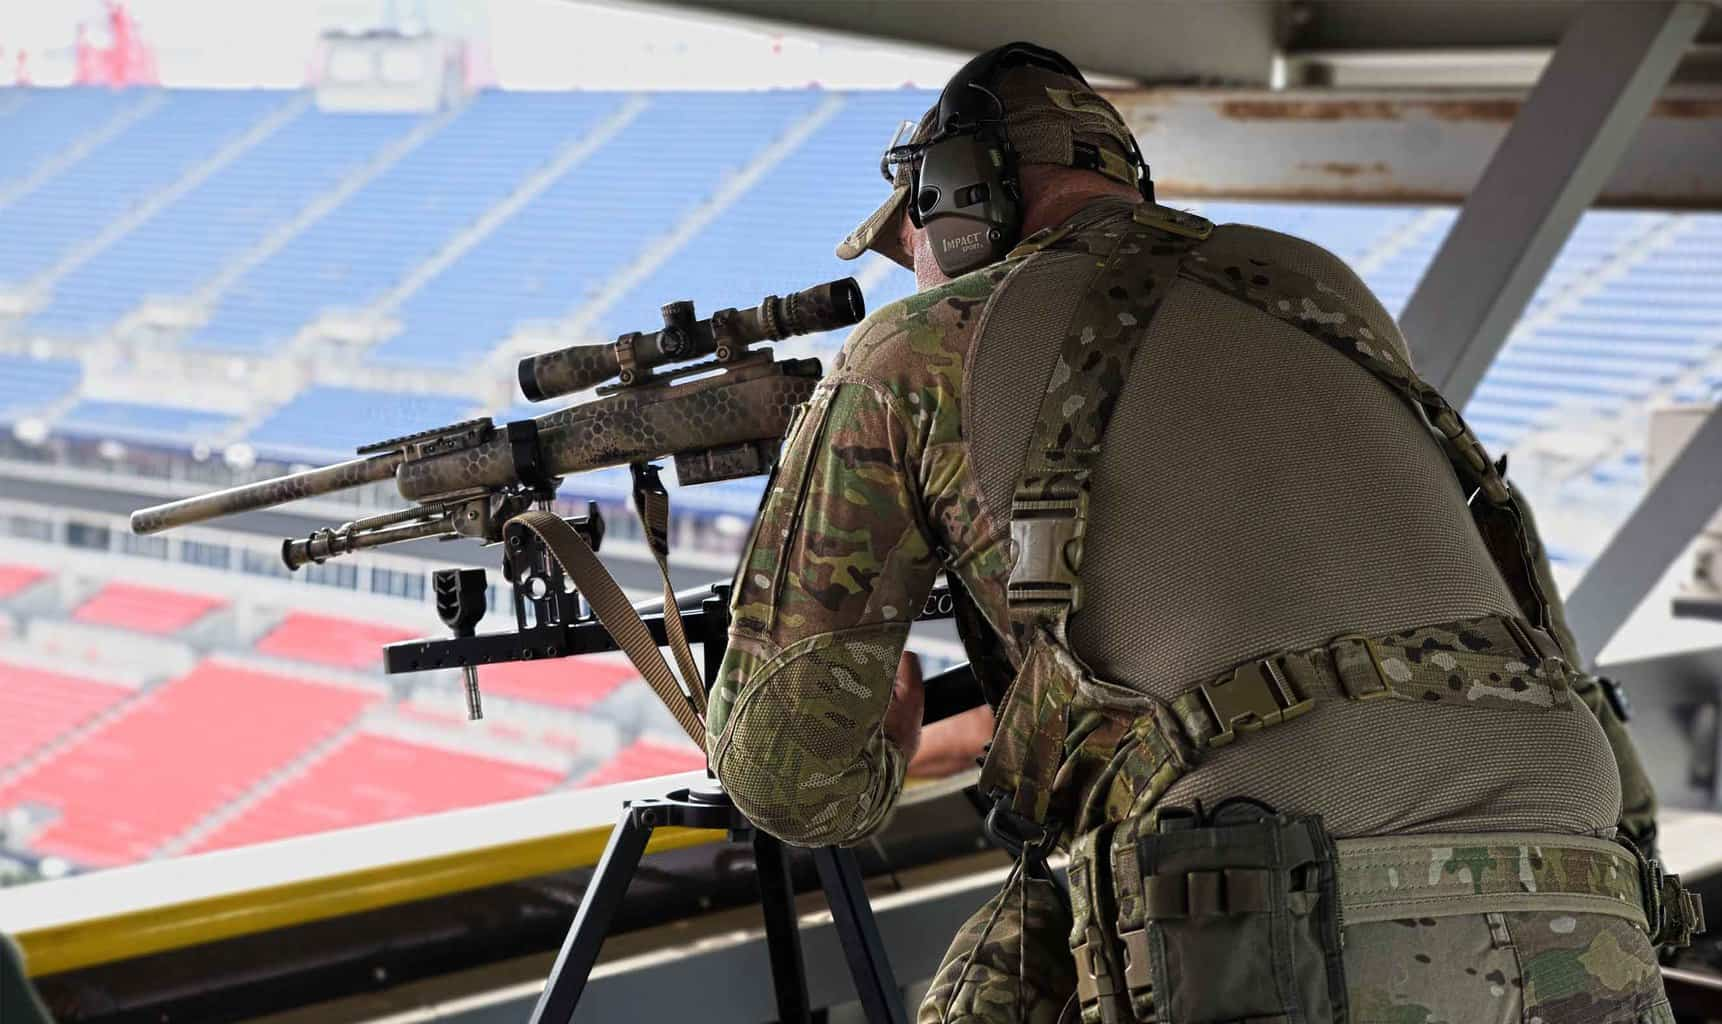 Police Sniper Response To A Public Venue Tacflow Featured Course